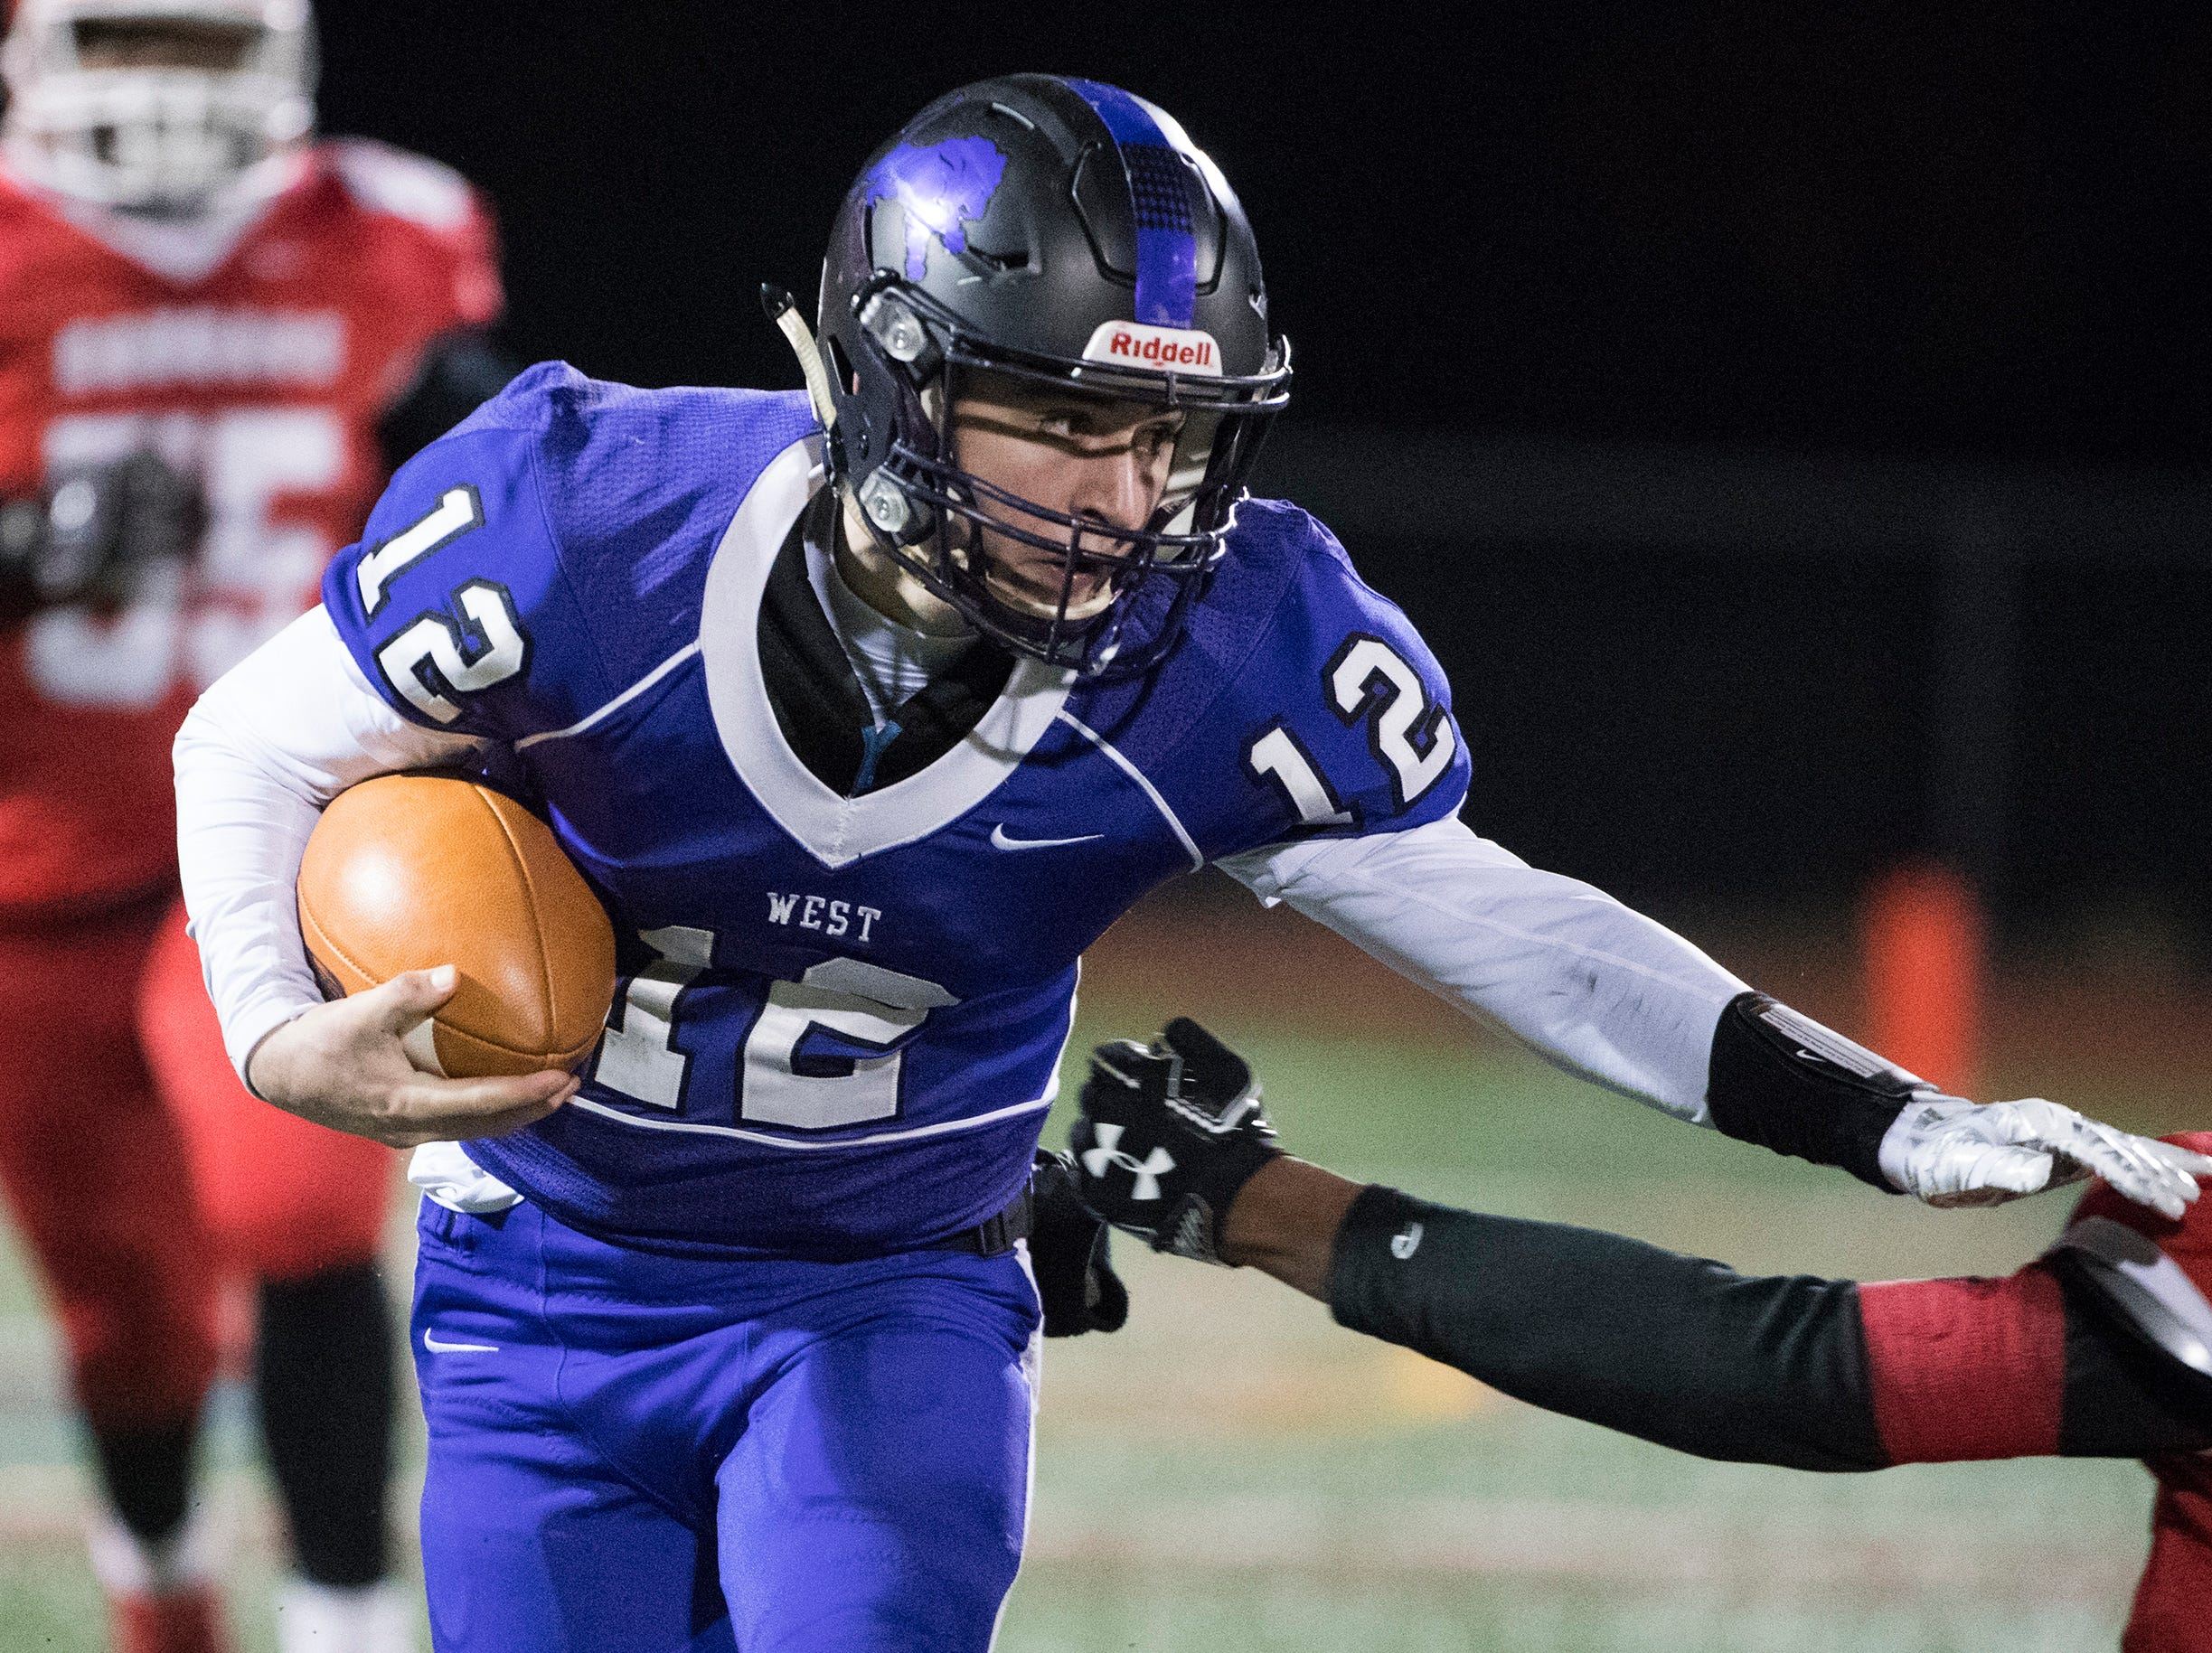 West's Nick Arcaroli (12) carries the ball during an annual East-West game Wednesday, Nov. 21, 2018 at Cherry Hill West High School in Cherry Hill, N.J. West won 22-7.